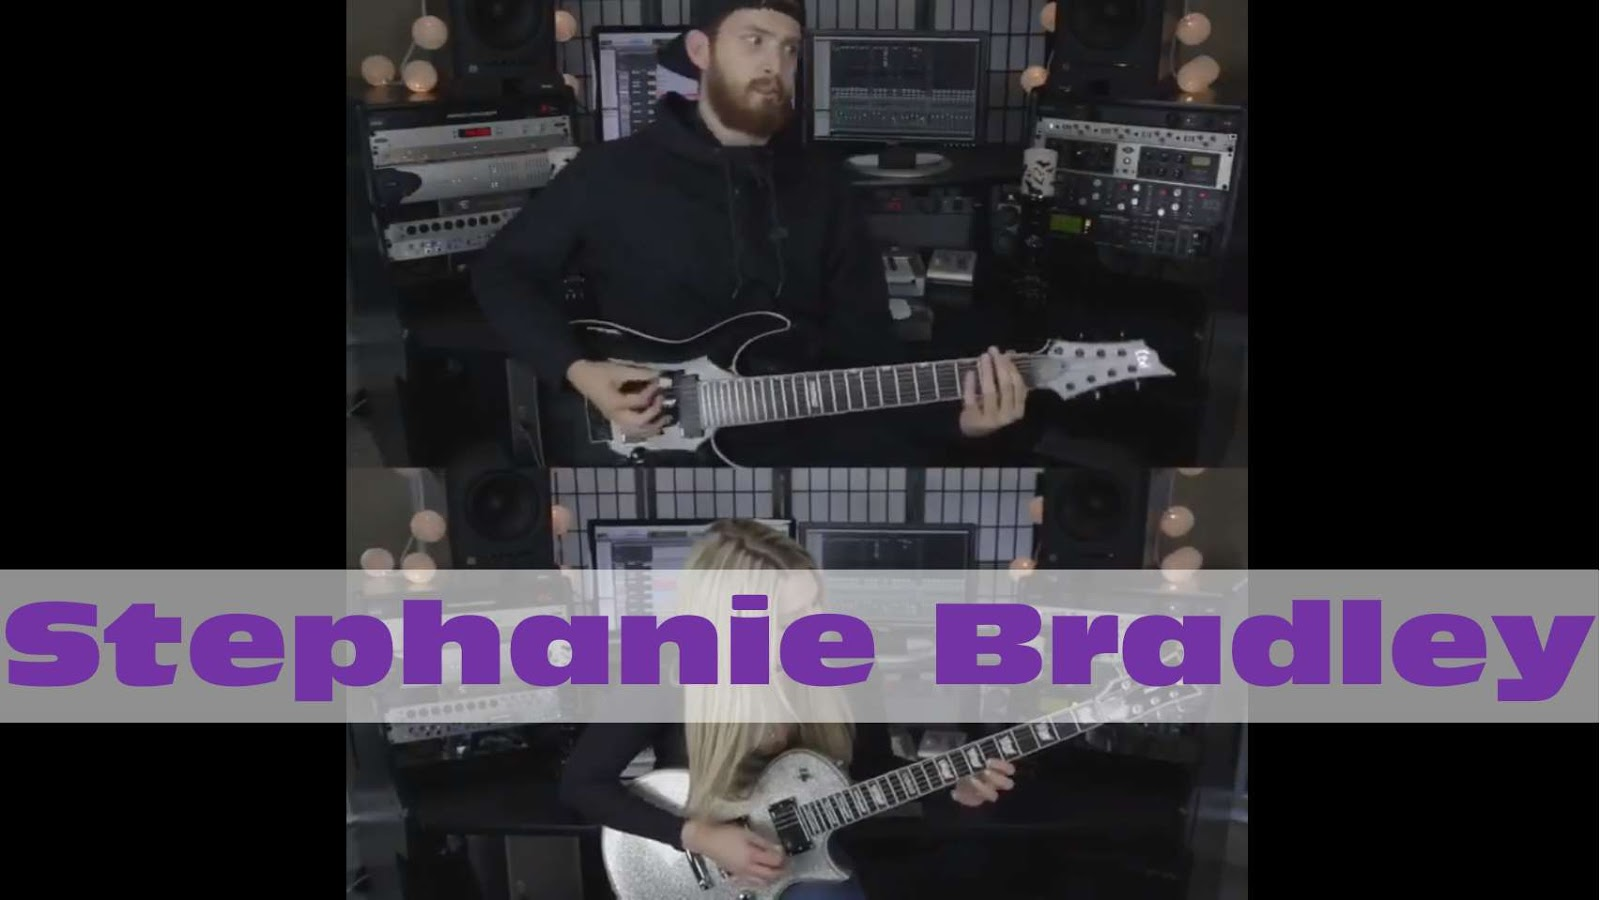 Stephanie Bradley: Metal Version of The Halloween Theme song